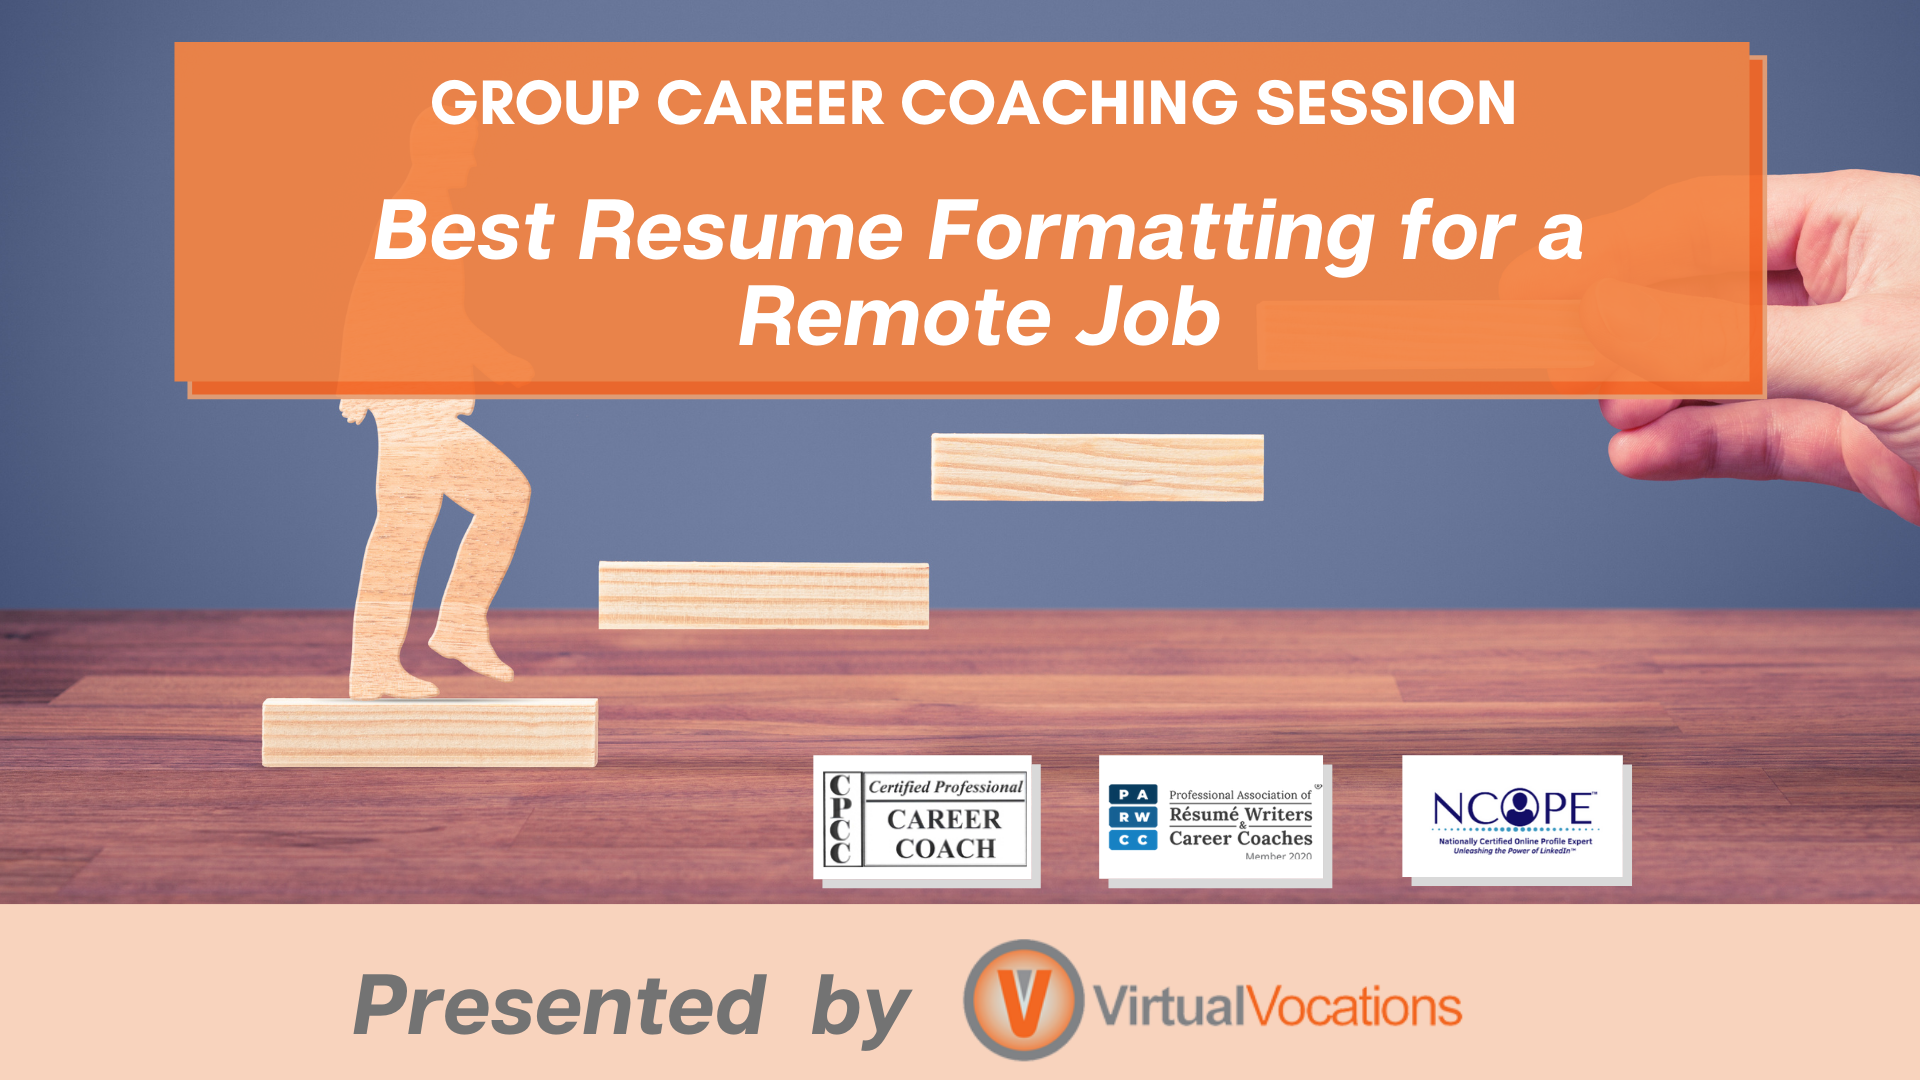 Best Resume Formatting for Remote Jobs